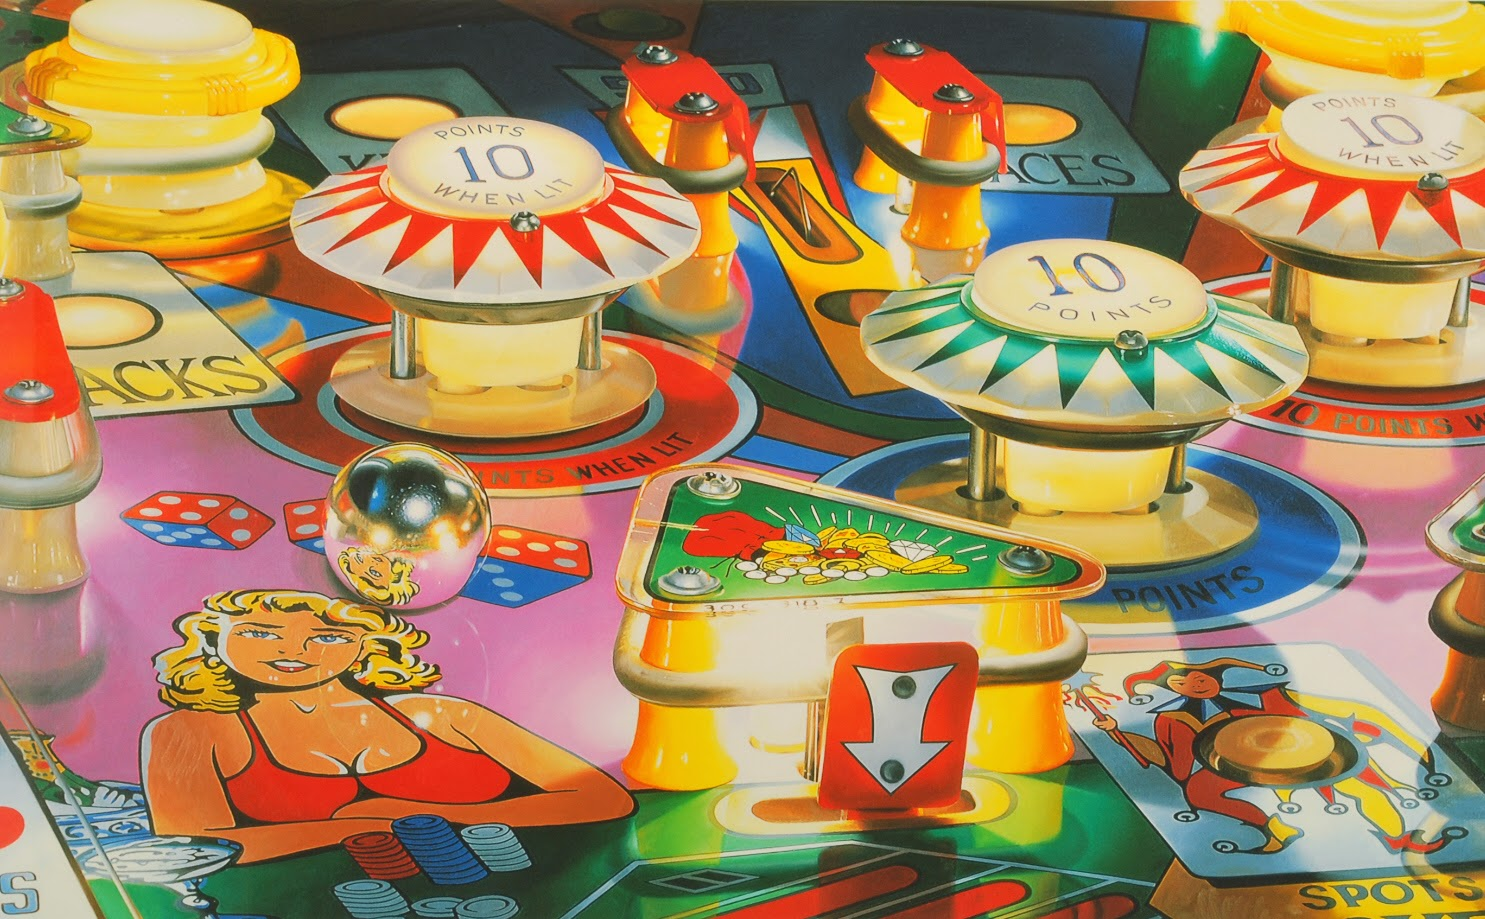 06-PinBall-3-Charles-Bell-Hyper-Realistic-Paintings-www-designstack-co